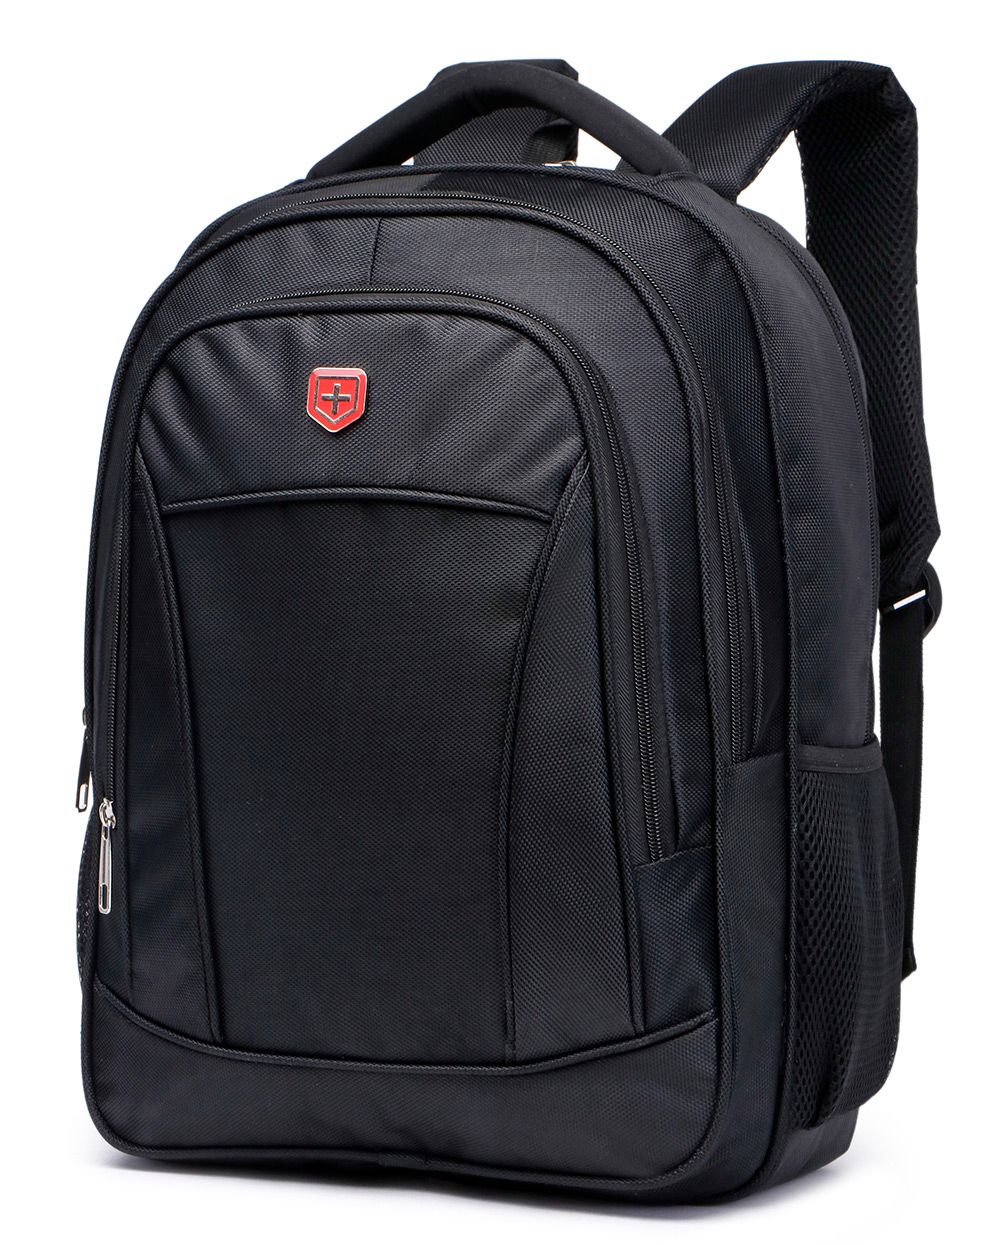 Mochila Notebook Executiva Faculdade M14281 Swiss Style